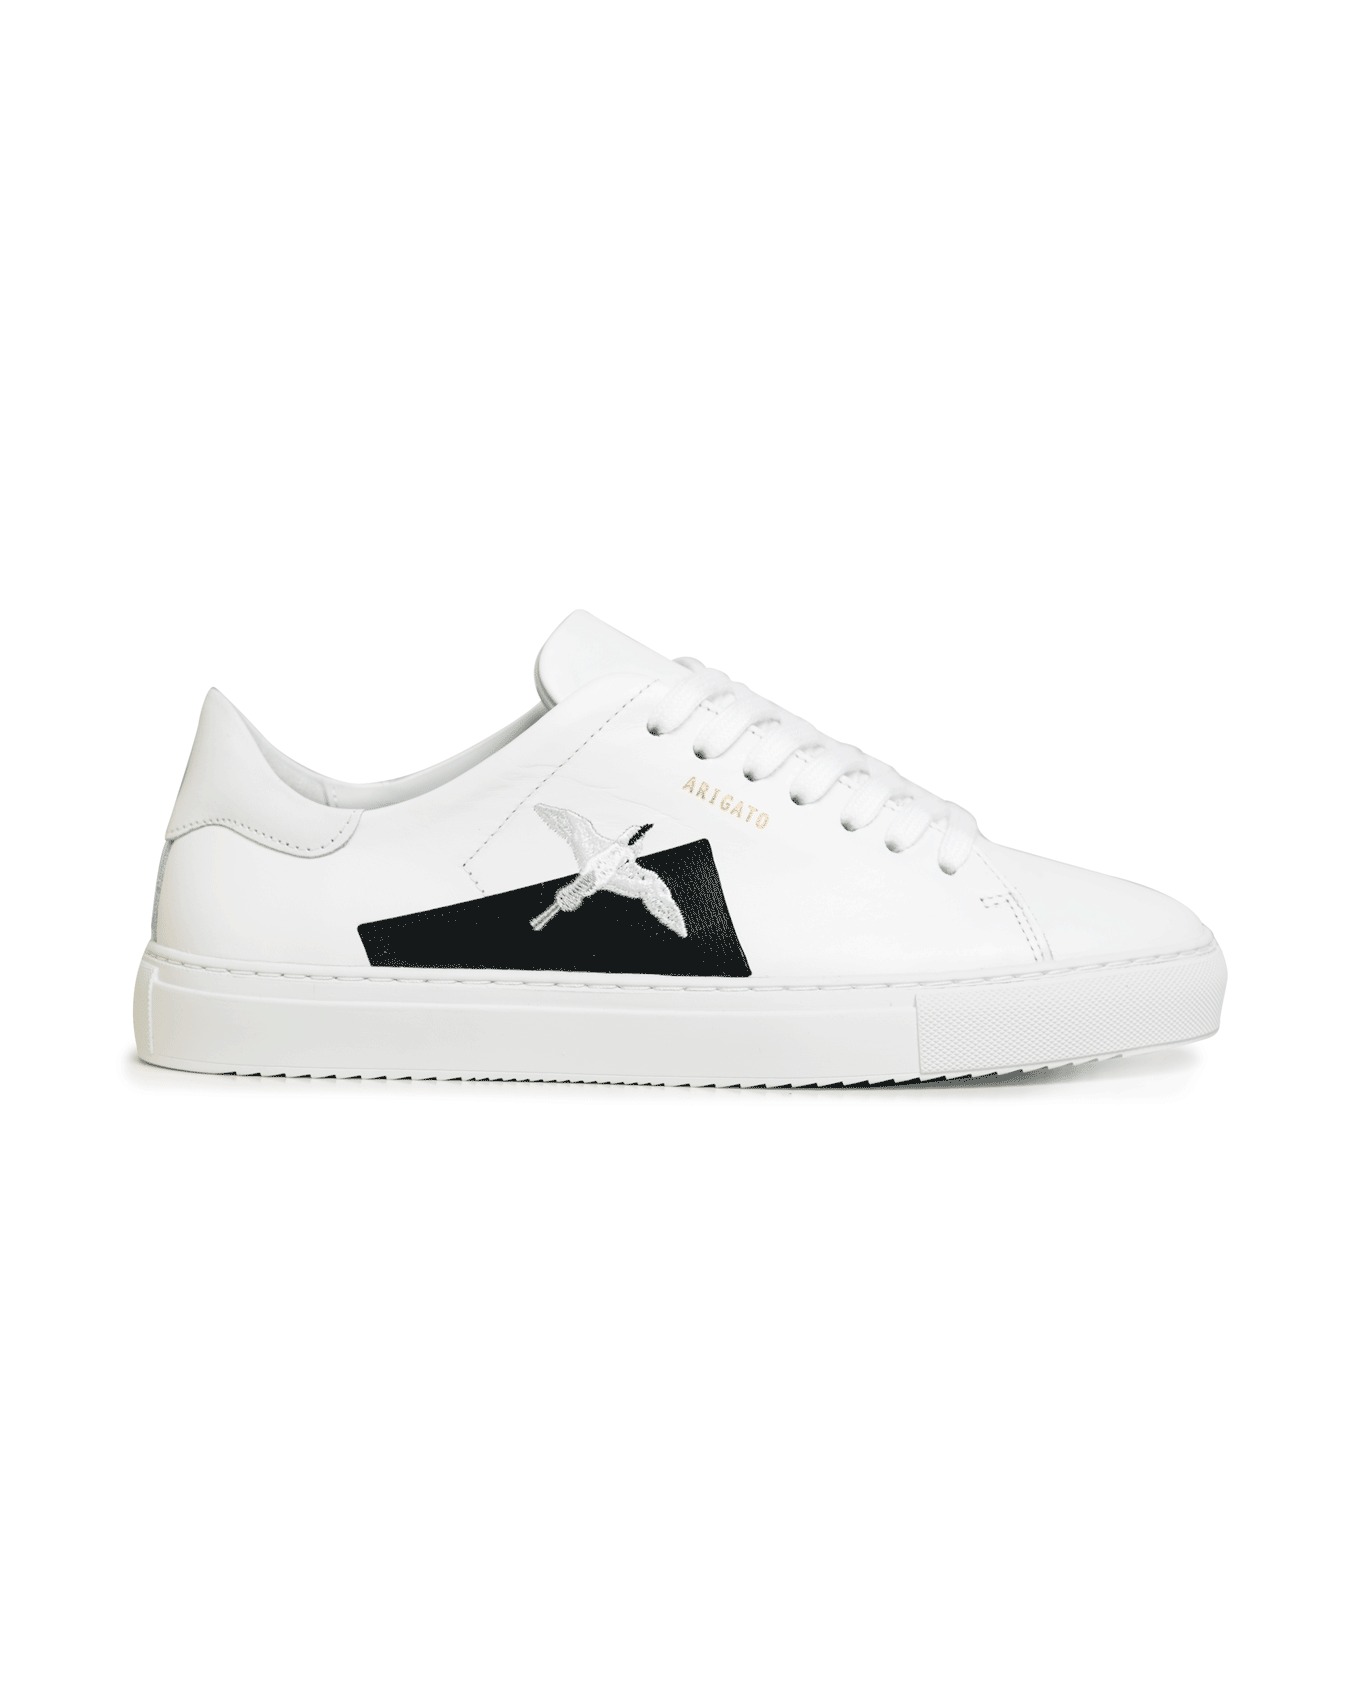 Axel Arigato Clean 90 Taped Bird Sneaker White